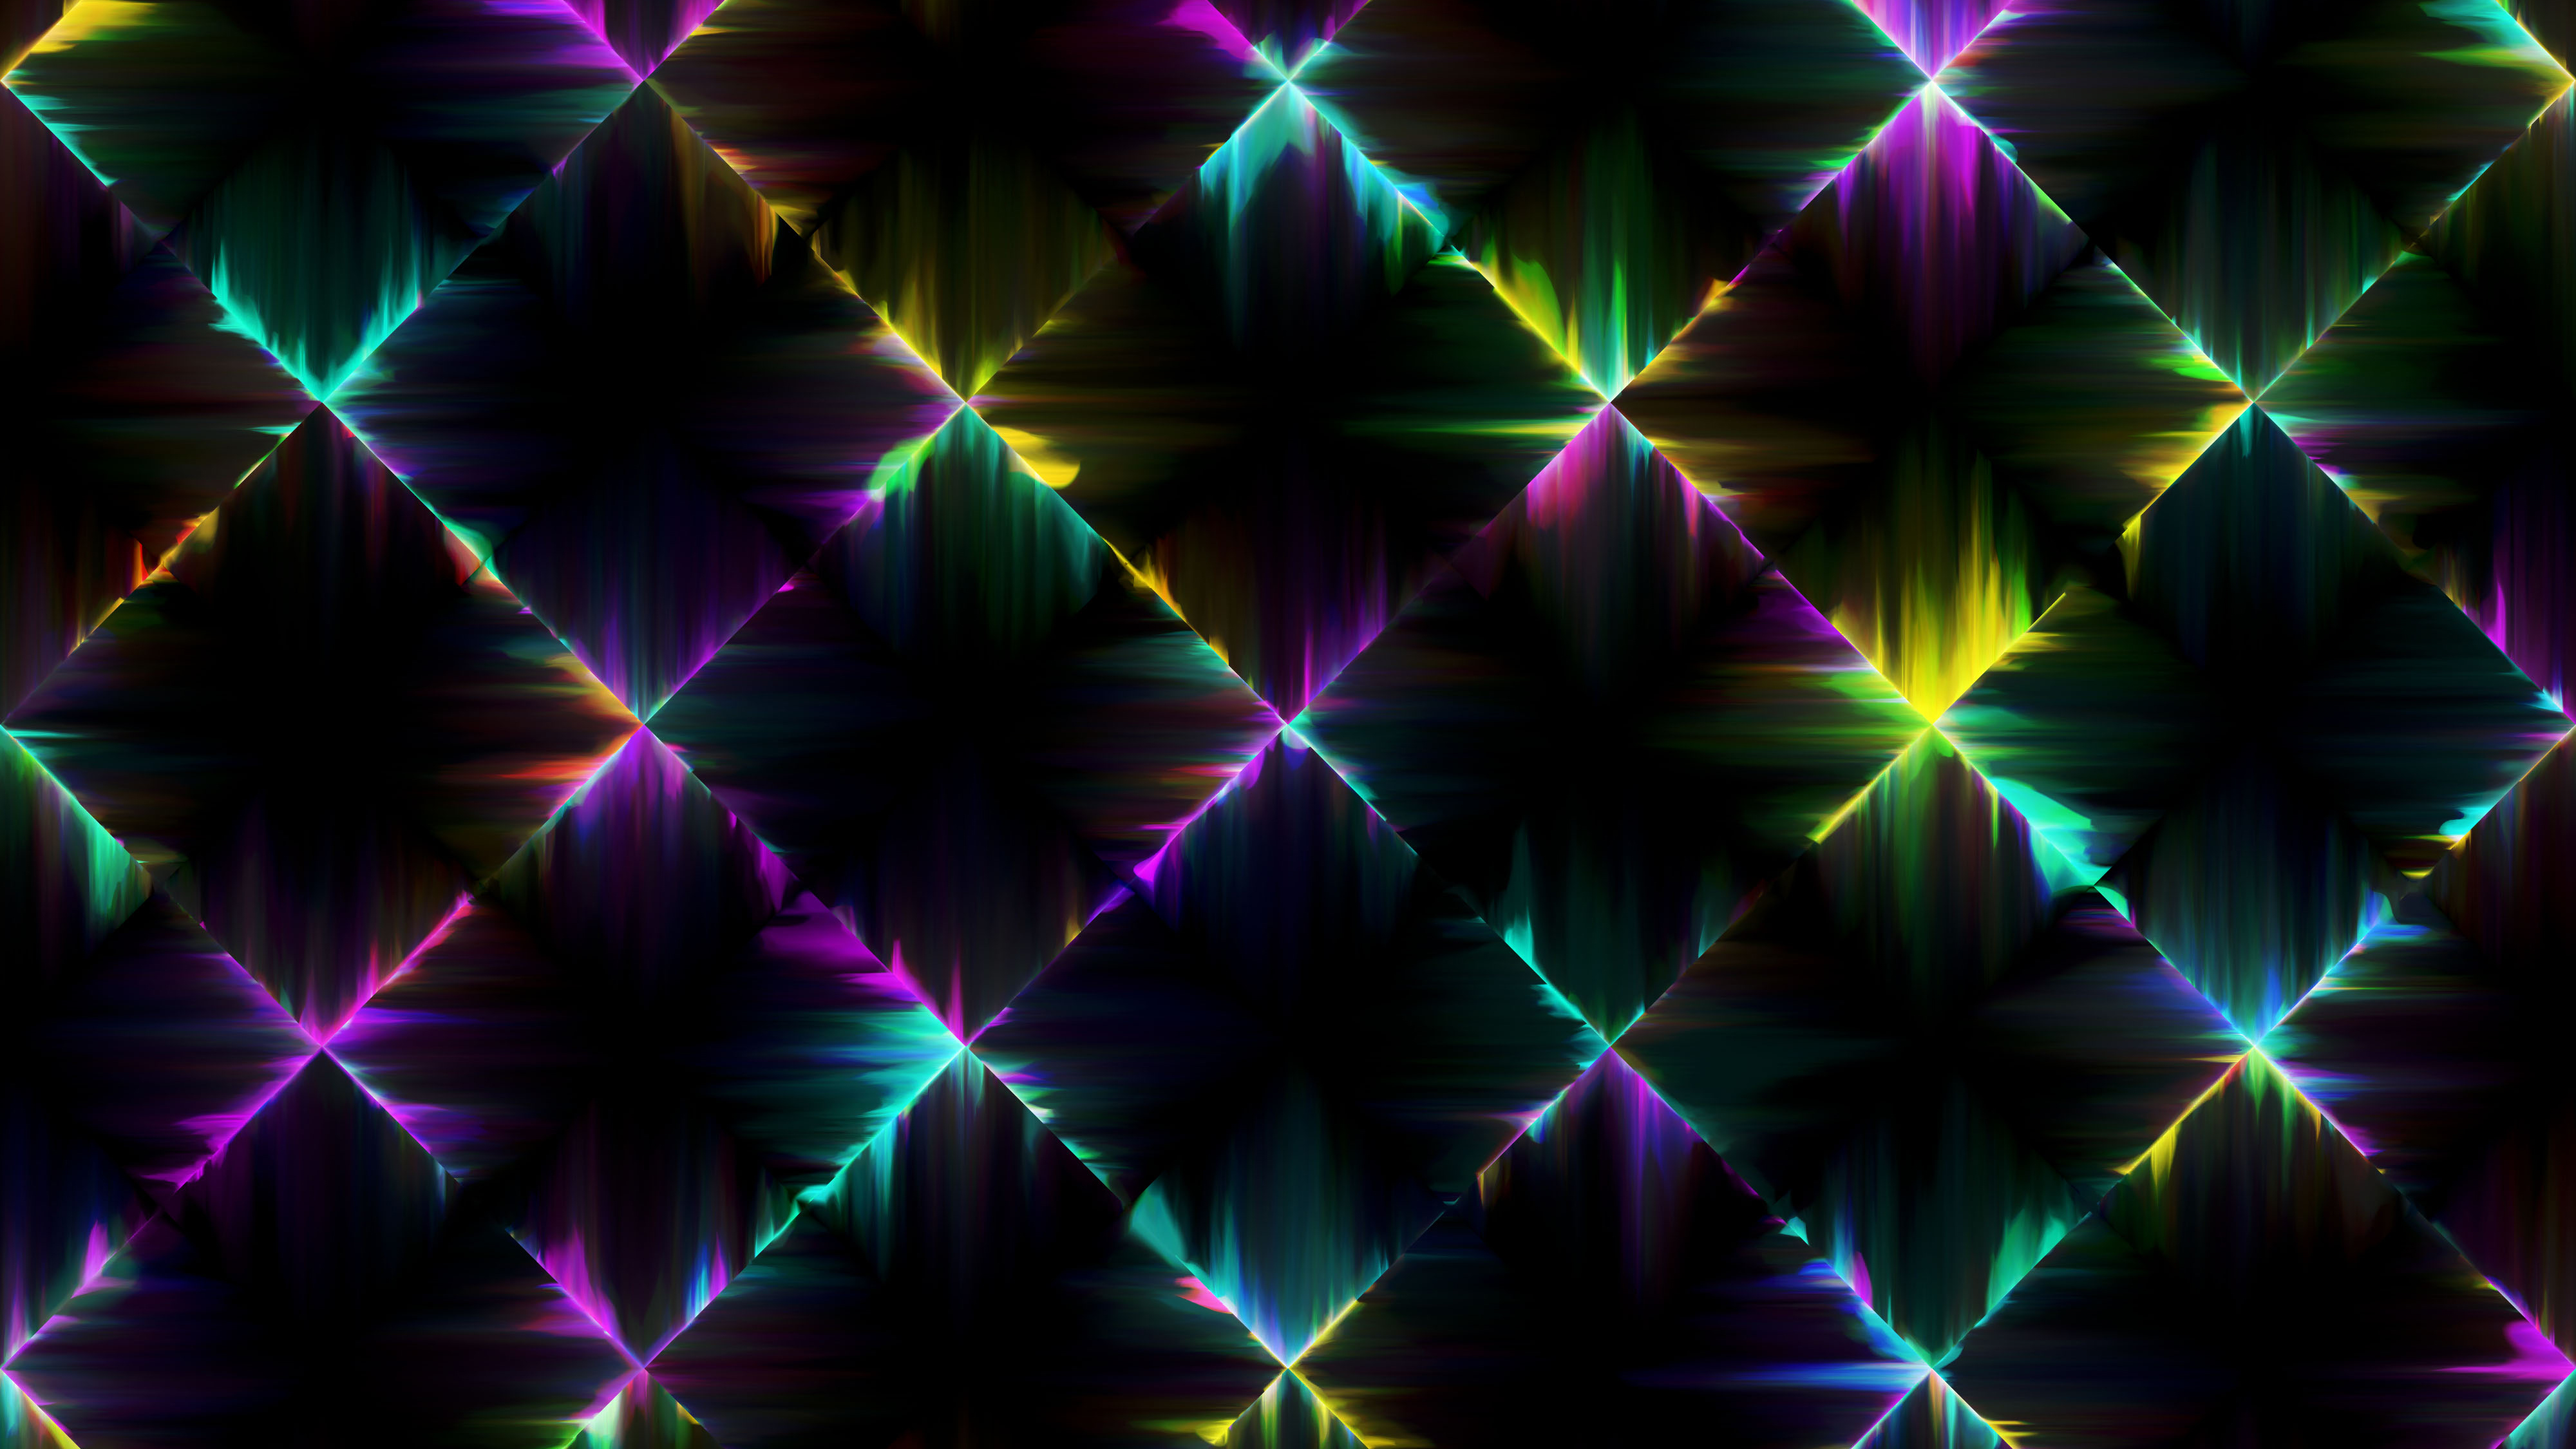 Neon Colorful Lights 4K Wallpapers   HD Wallpapers